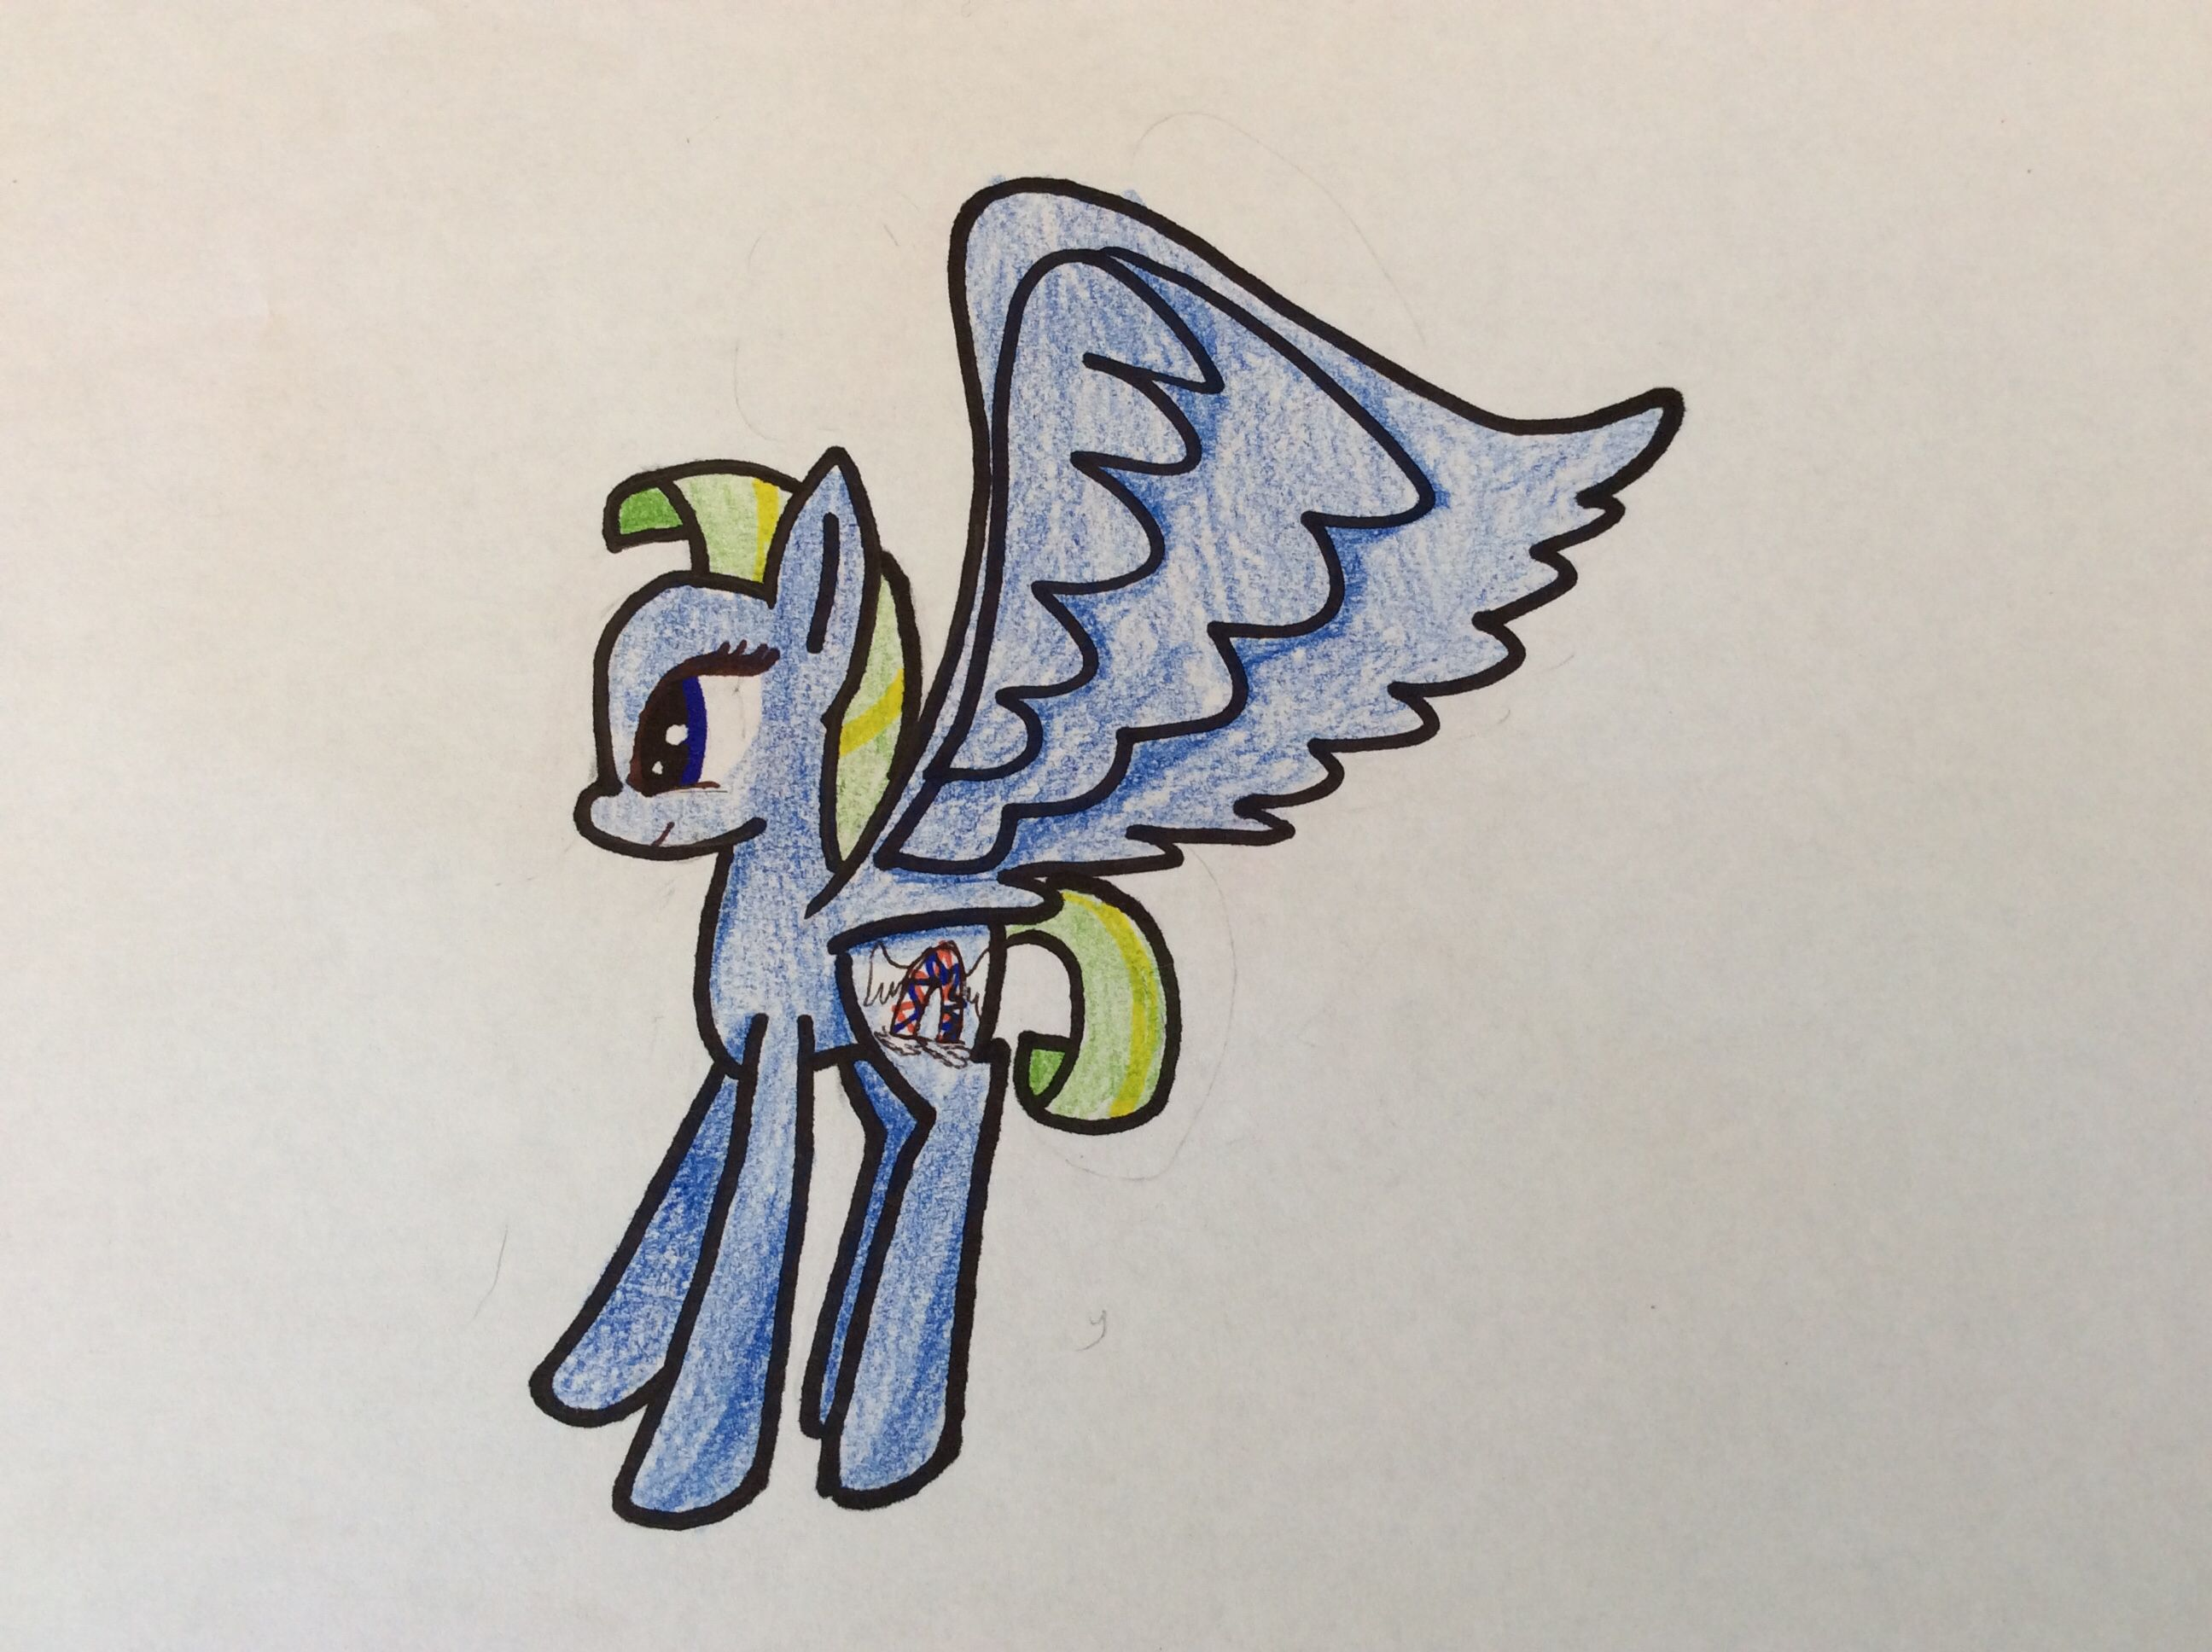 She was born with big wings. Named windy dreams. Adopted by me made by Nadia pizzallama